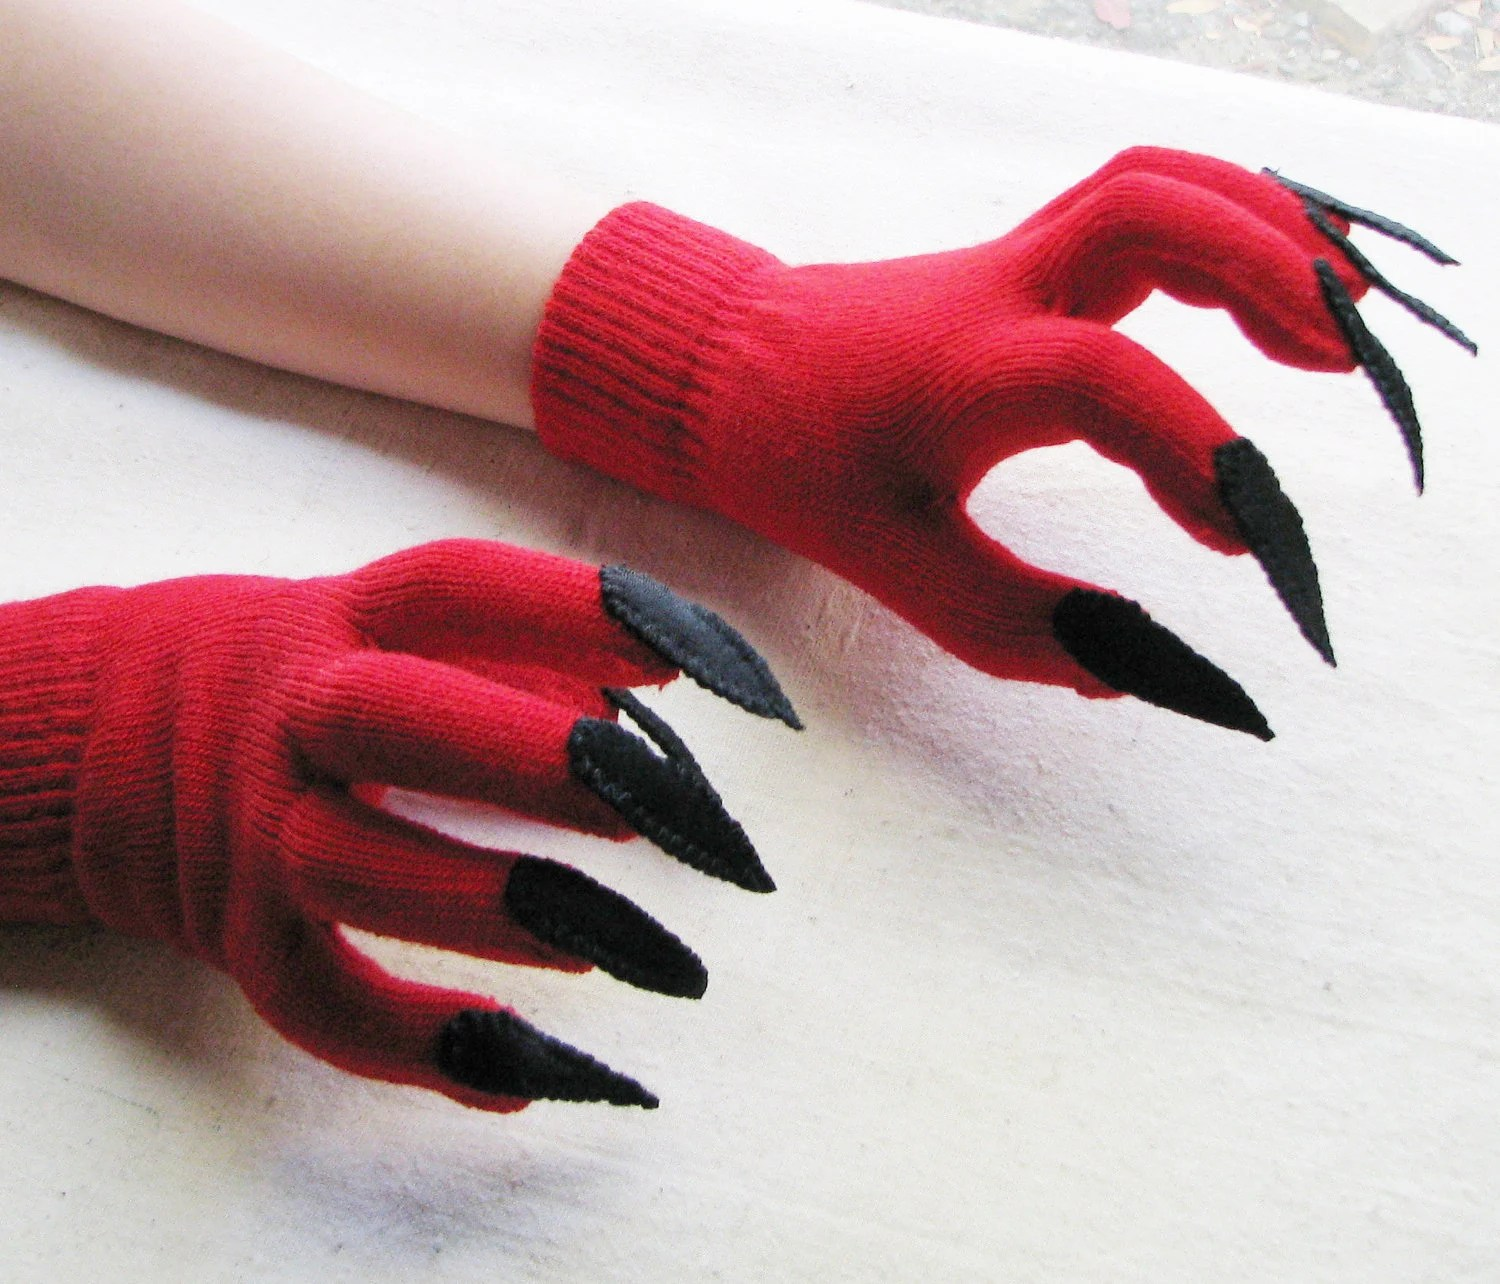 Gloves with claws, red and black, for Halloween costume or pretend play, one size stretch glove - SnippetFairy